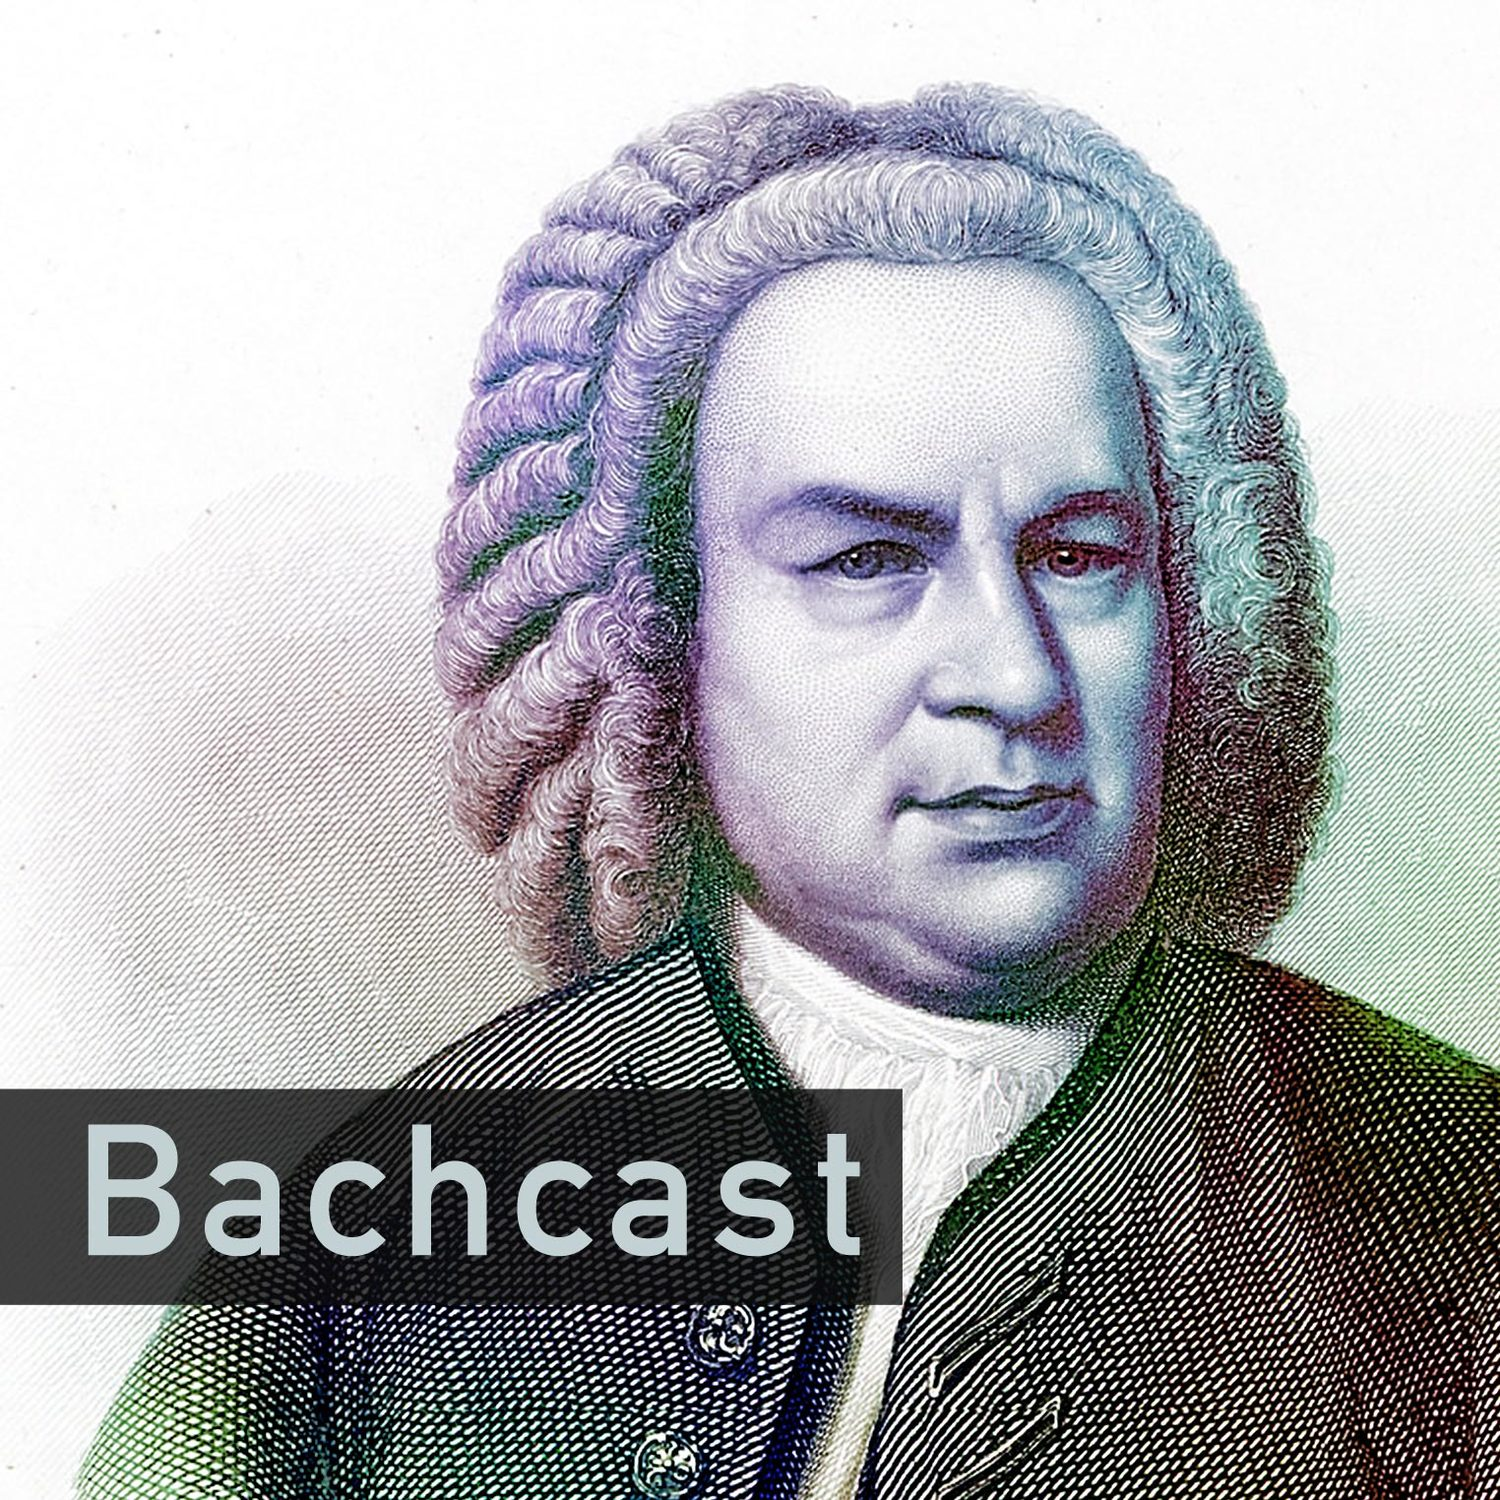 Bachcast - Baroque Review